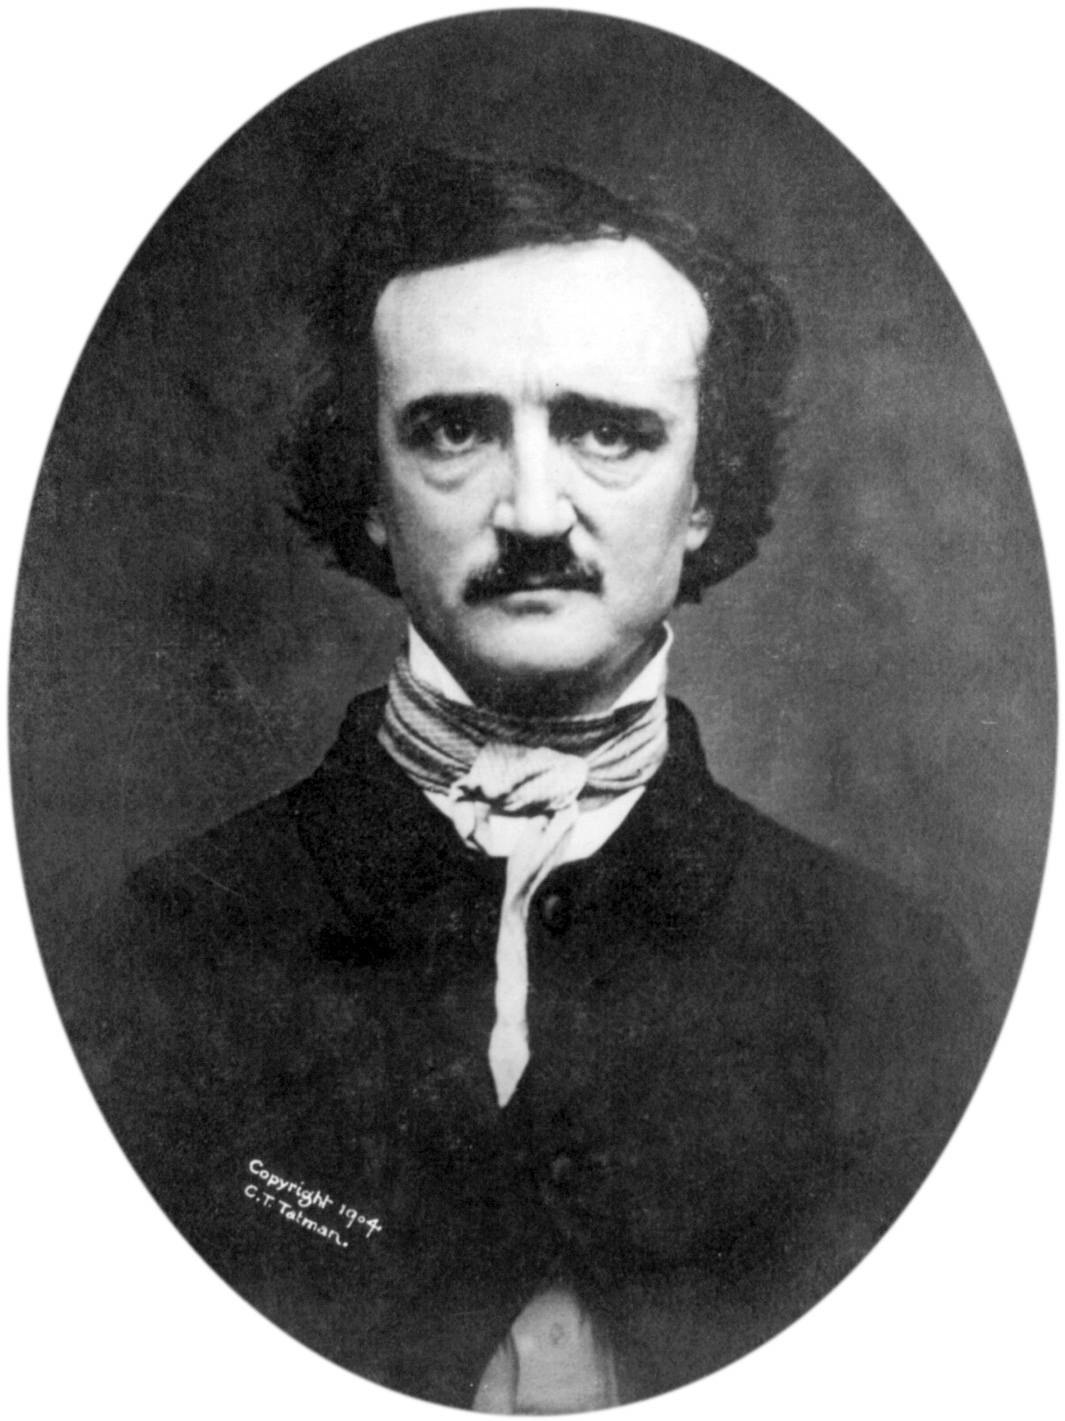 Edgar_Allan_Poe_2_retouched_and_transparent_bg